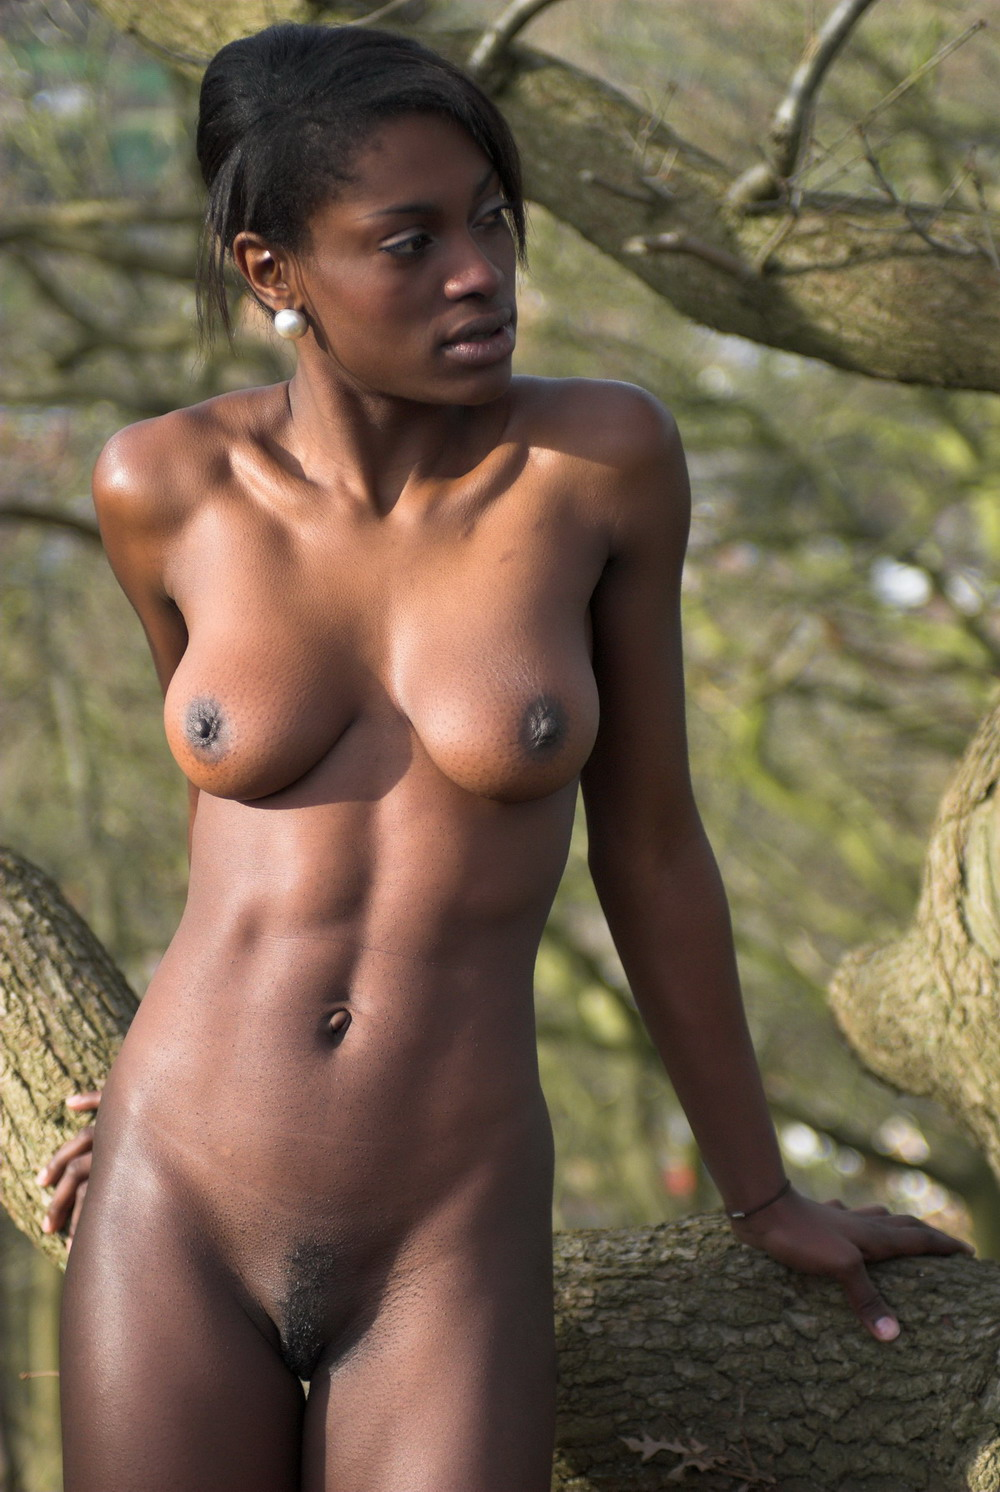 Naked african girl photo, nude sexy kiss